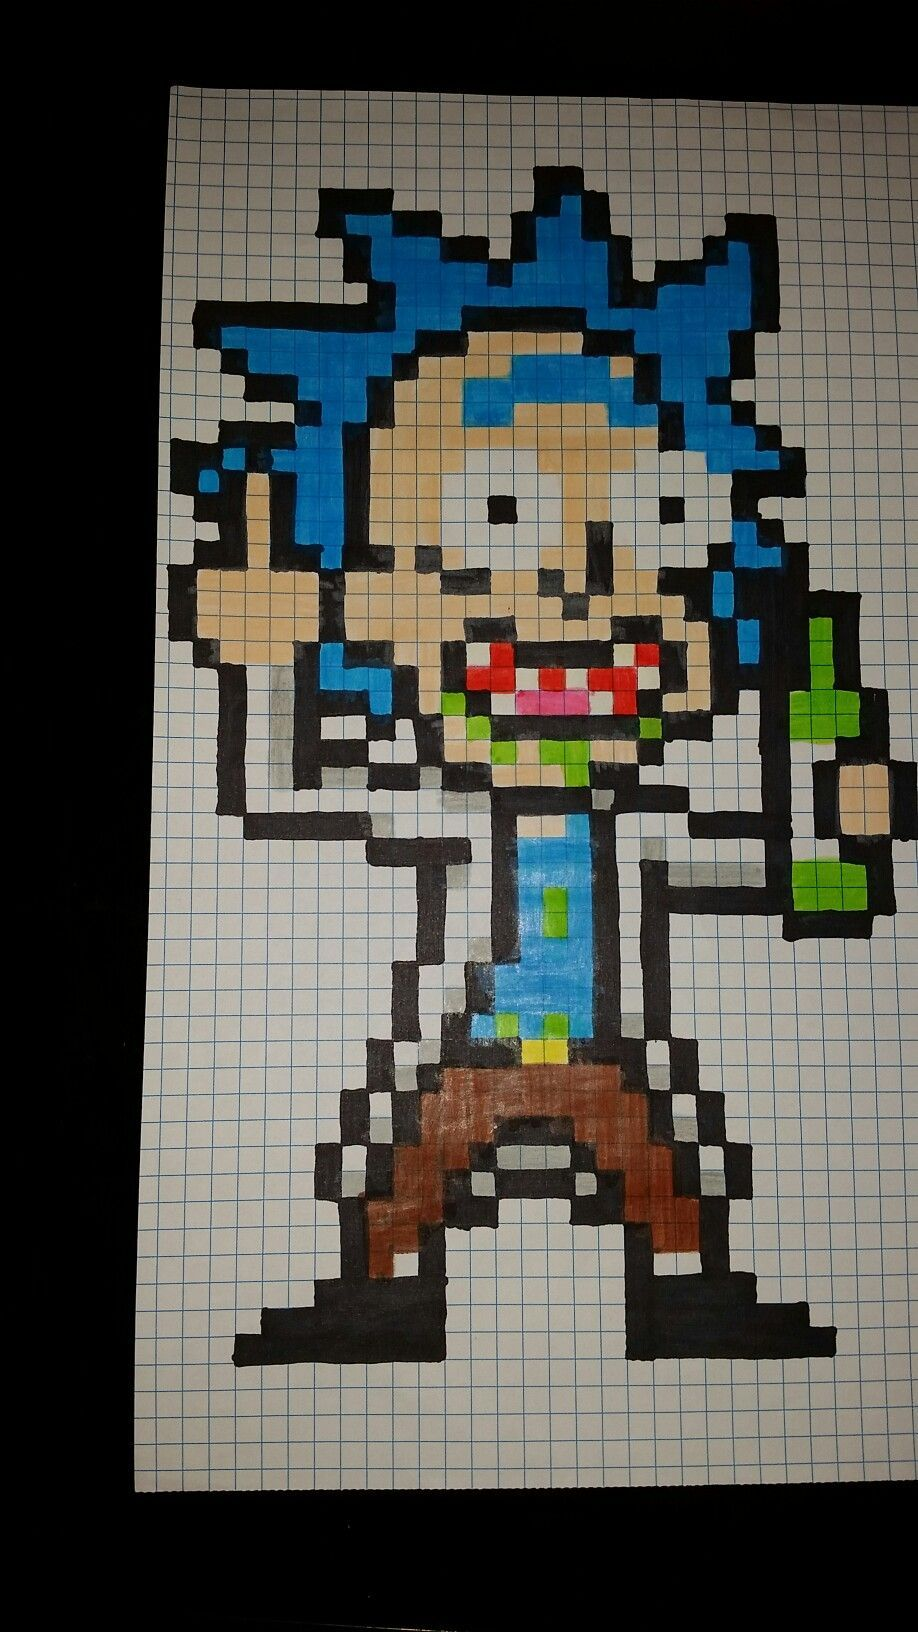 Rick Pixel Art Graph Paper Drawings Anime Drawings Sketches Graph Paper Art Easy Drawings Minecraft Drawings M Pixel Art Anime Pixel Art Pixel Art Pattern